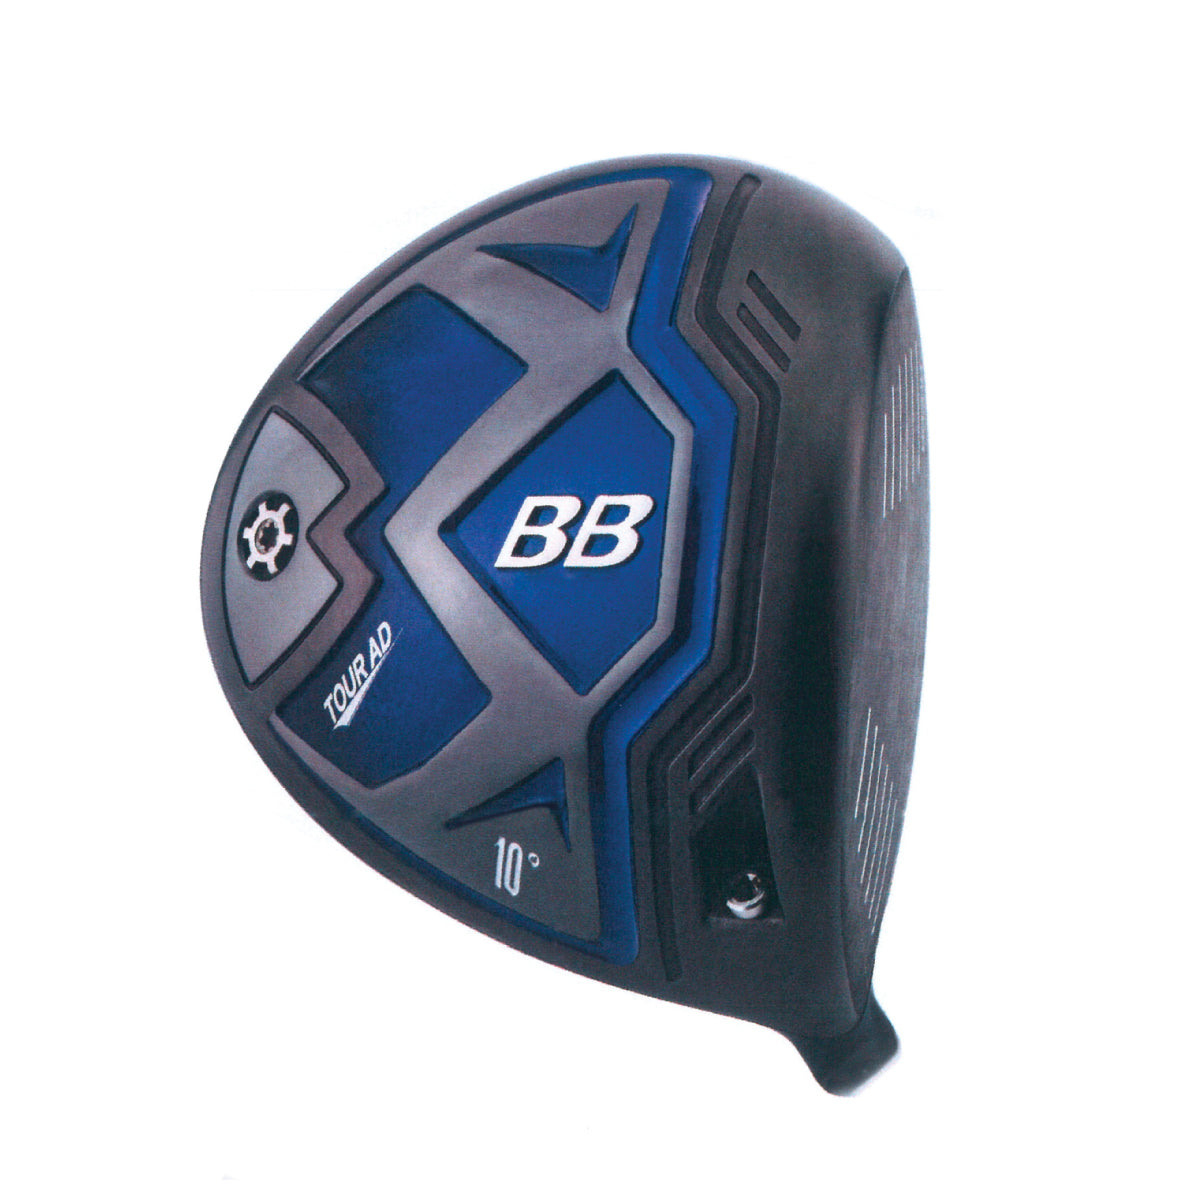 Graphite Design - Driver - Tour AD BB Hi-COR - 10 Degree